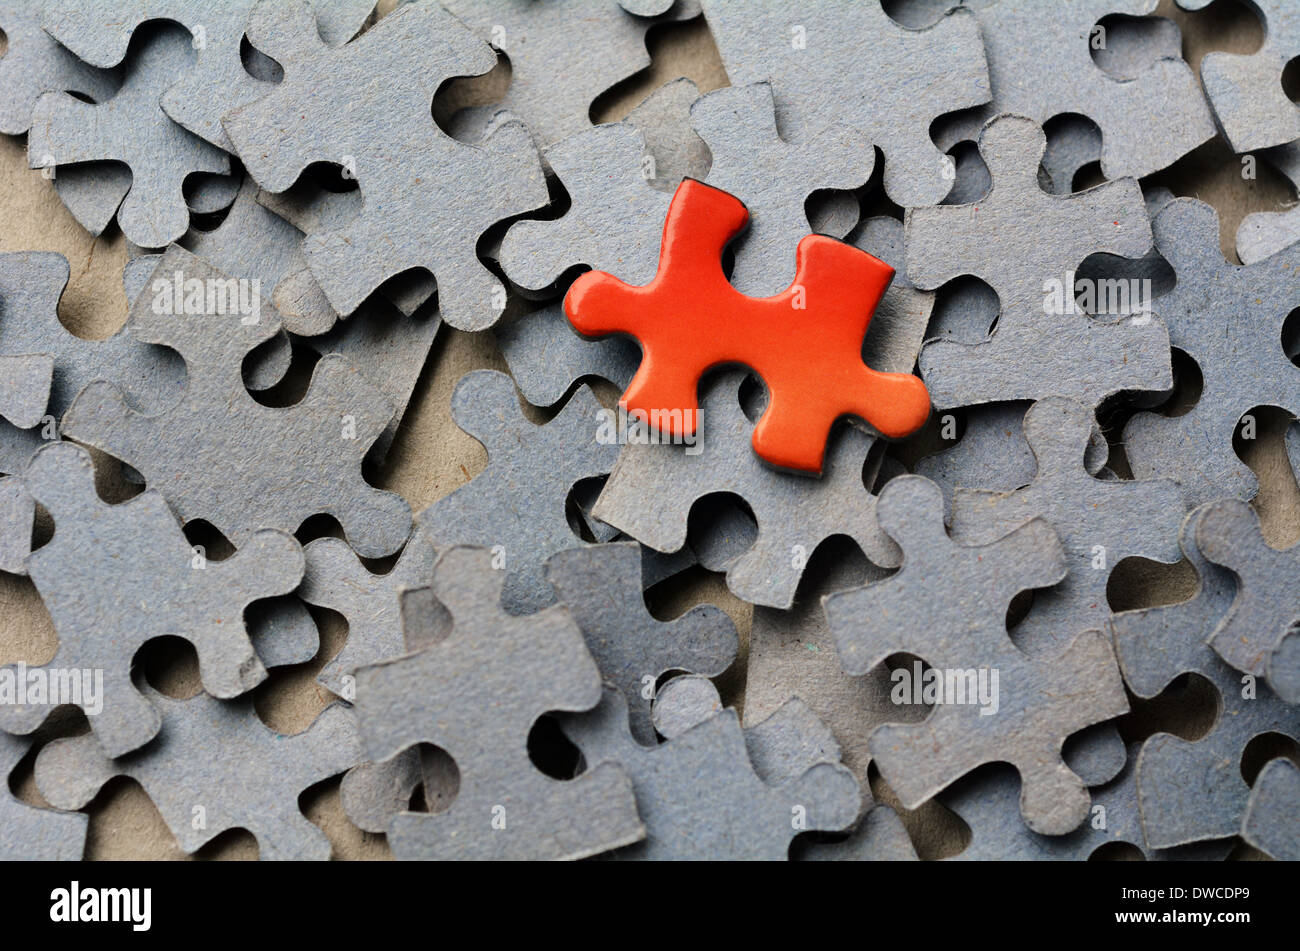 Orange puzzle piece standing out from larger group puzzle pieces. Business concept - branding, different, original. Stock Photo